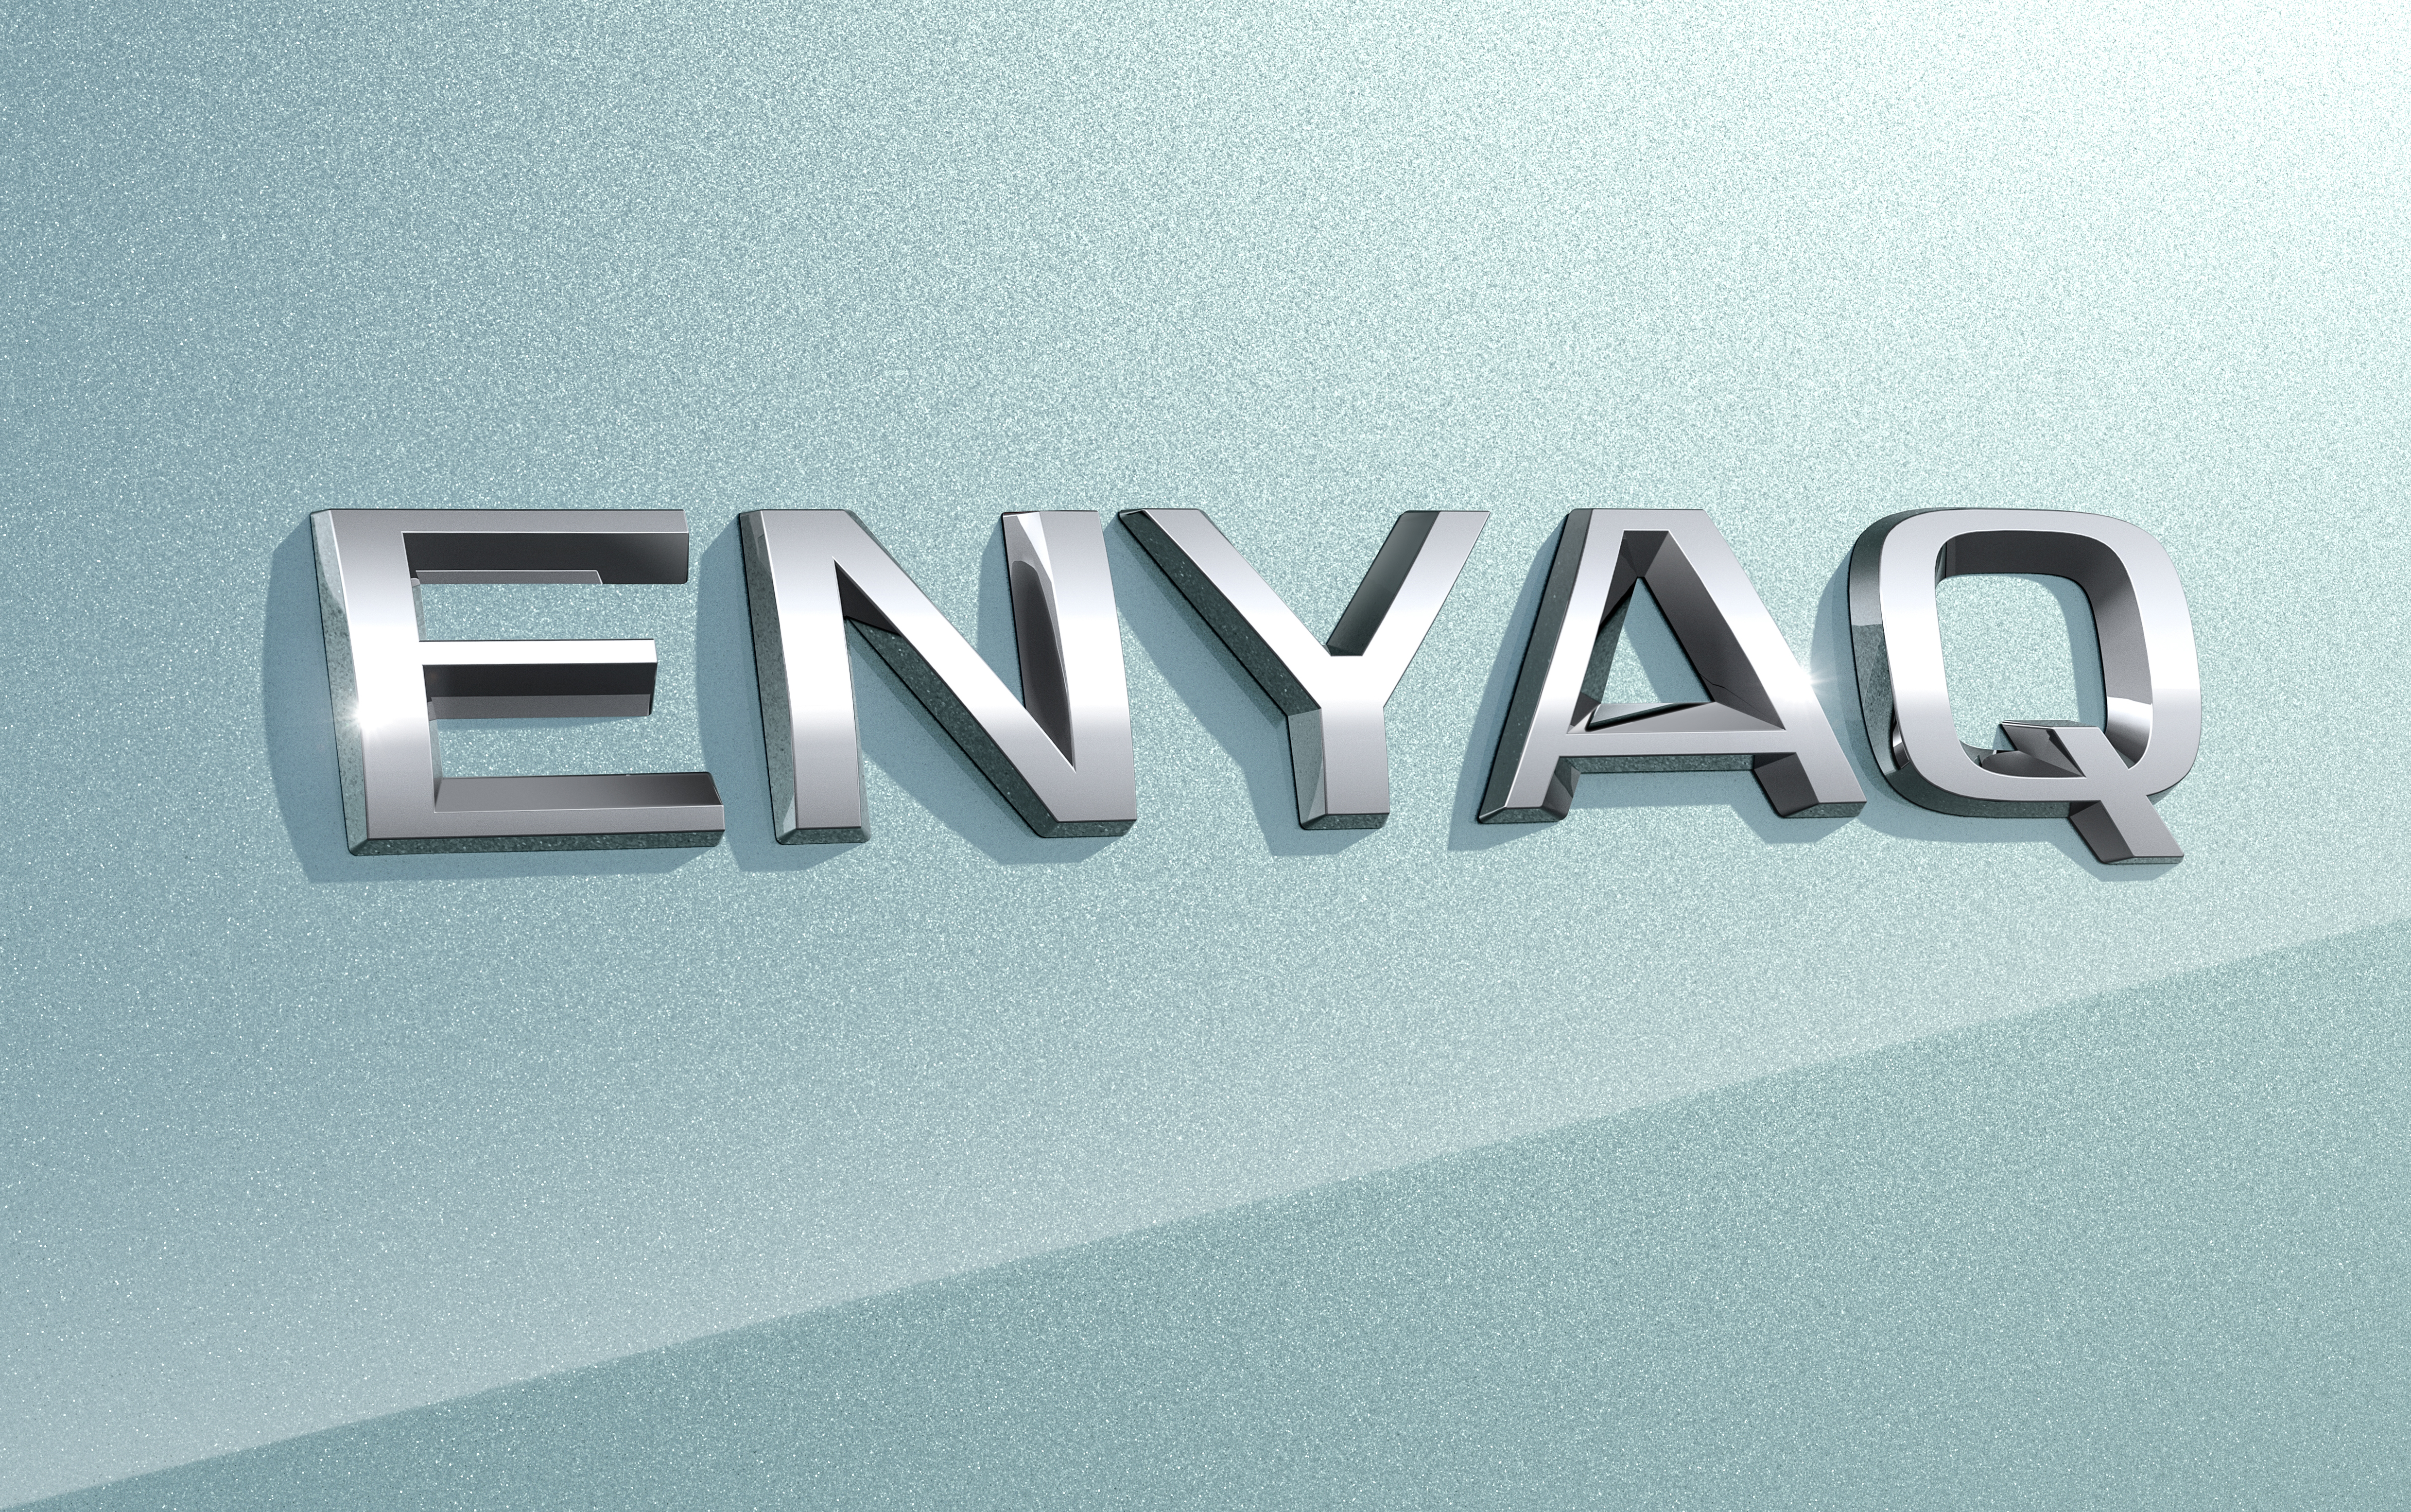 SKODA ENYAQ: Name of SKODA's first all-electric SUV is confirmed - Image 1